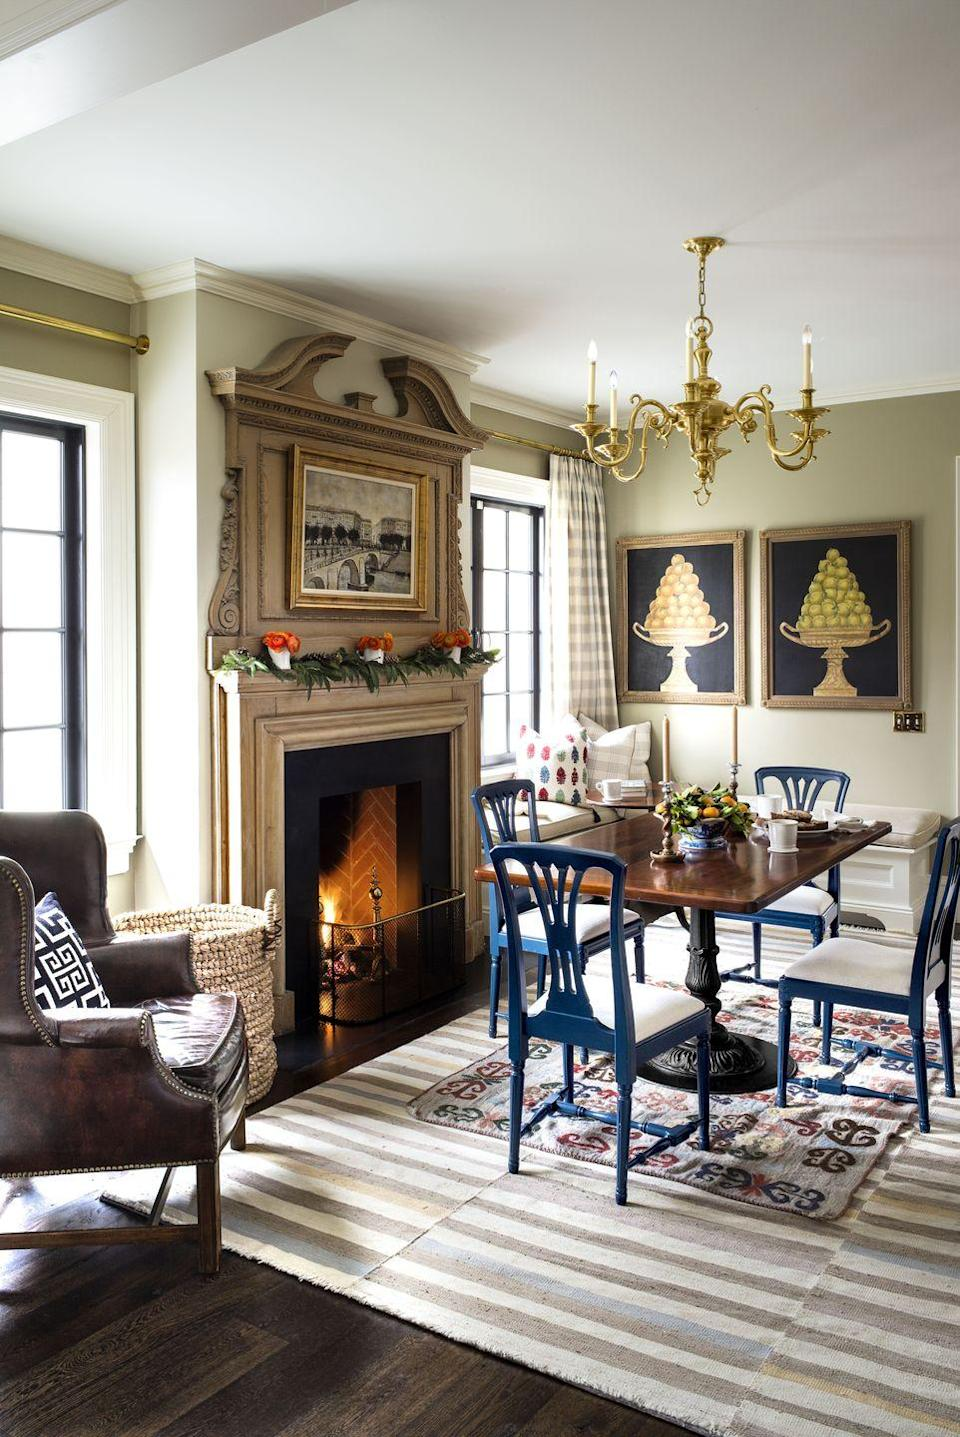 <p>You don't have to go bold to make a statement. This classic dining room with a simple garland on the mantle is insanely chic.</p>